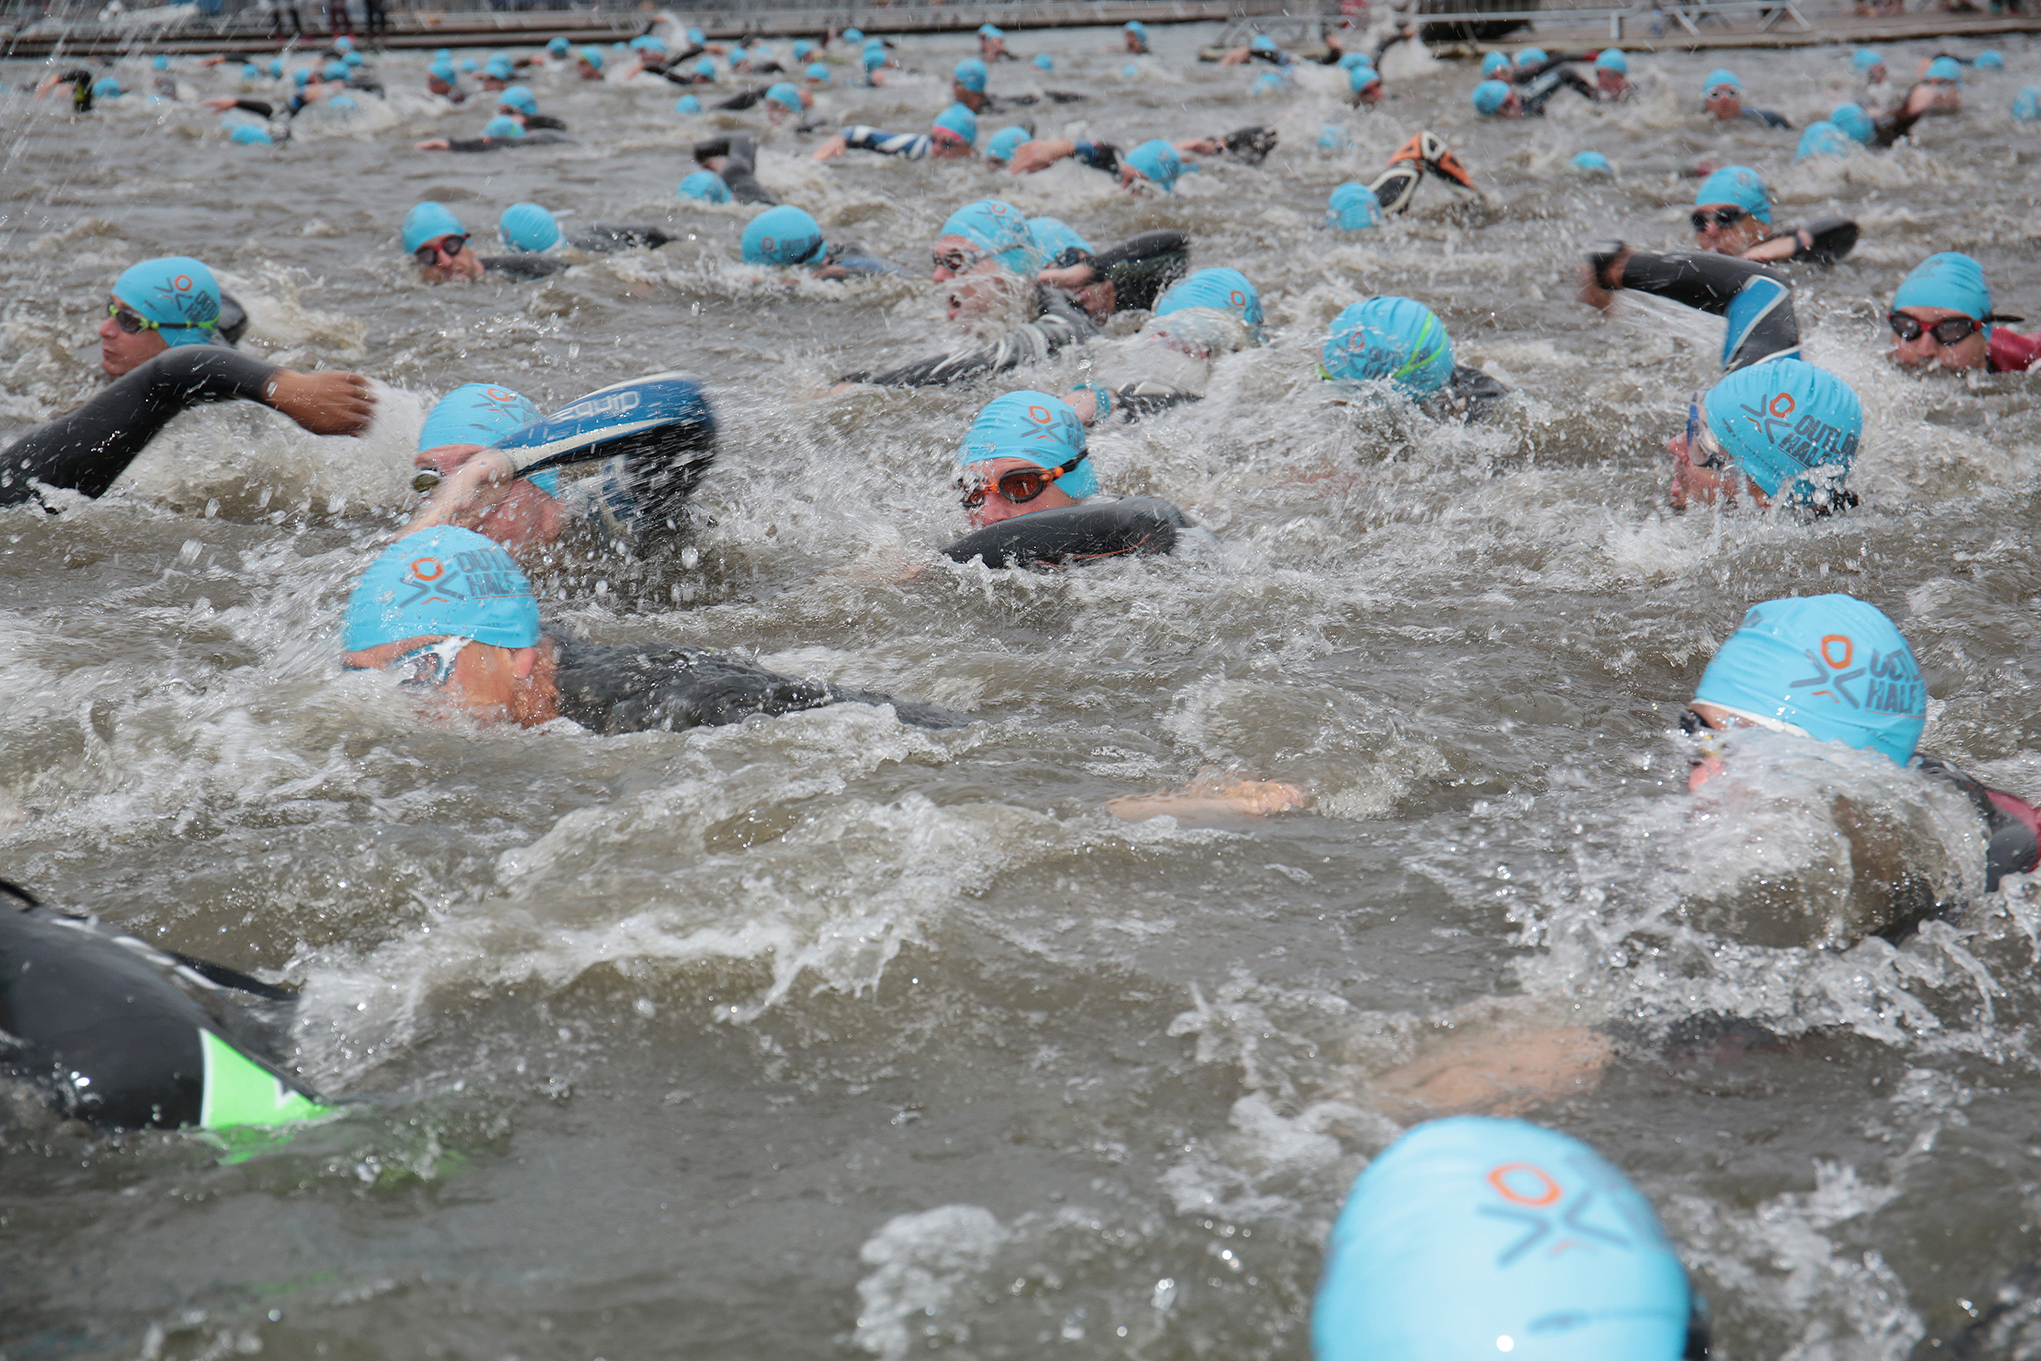 Outlaw Half: Holkham, Holkham | Major Sporting Events at Holkham | triathlon, running, swimming, cycling